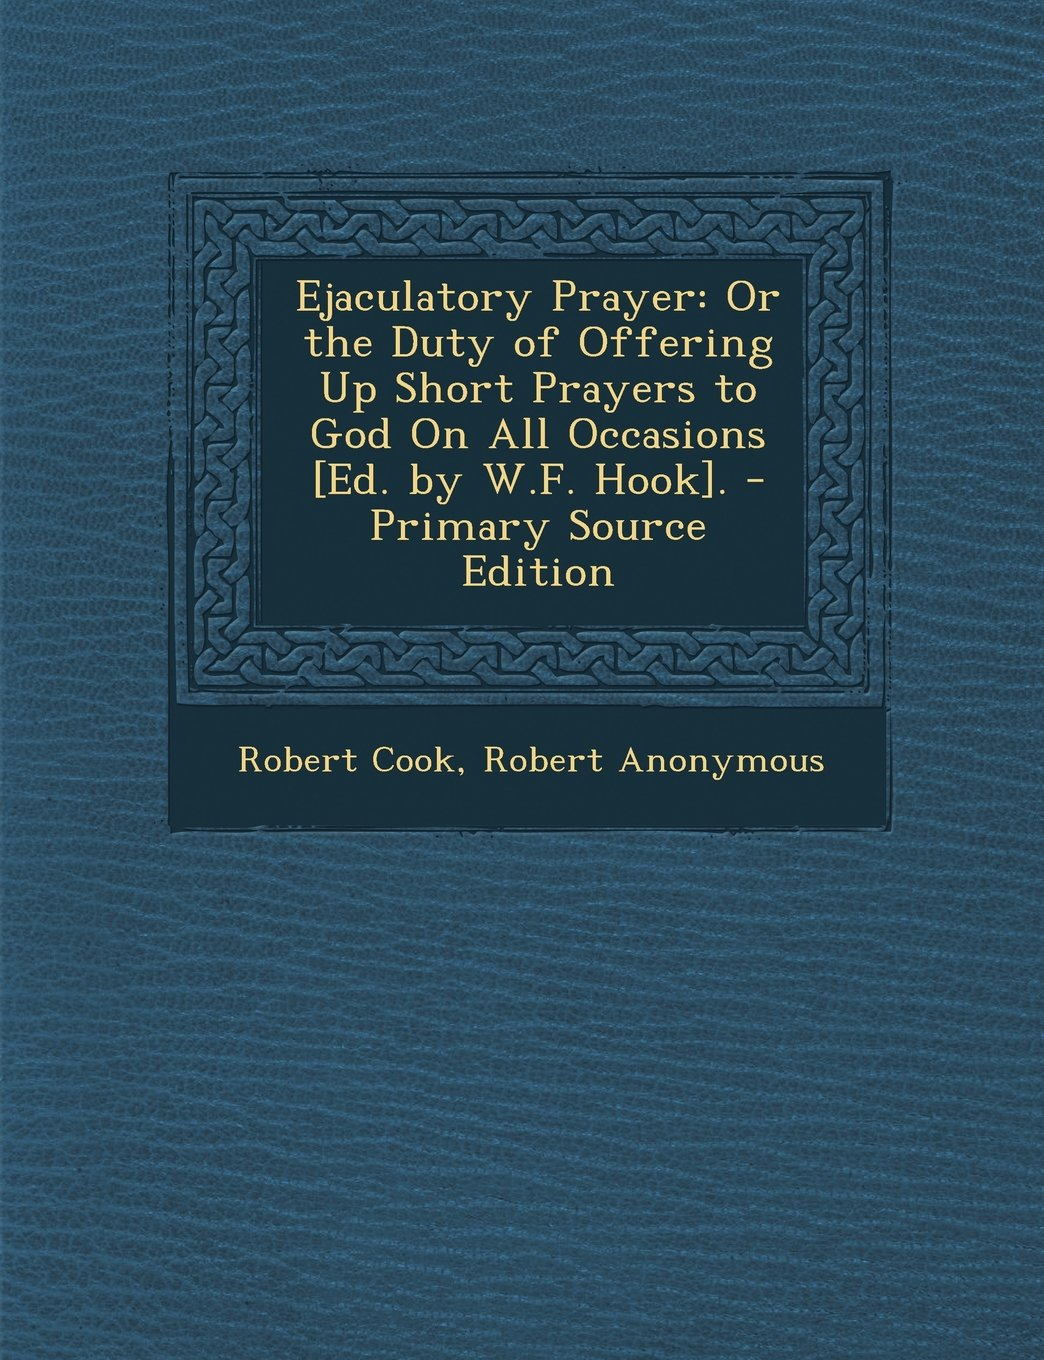 Ejaculatory Prayer: Or the Duty of Offering Up Short Prayers